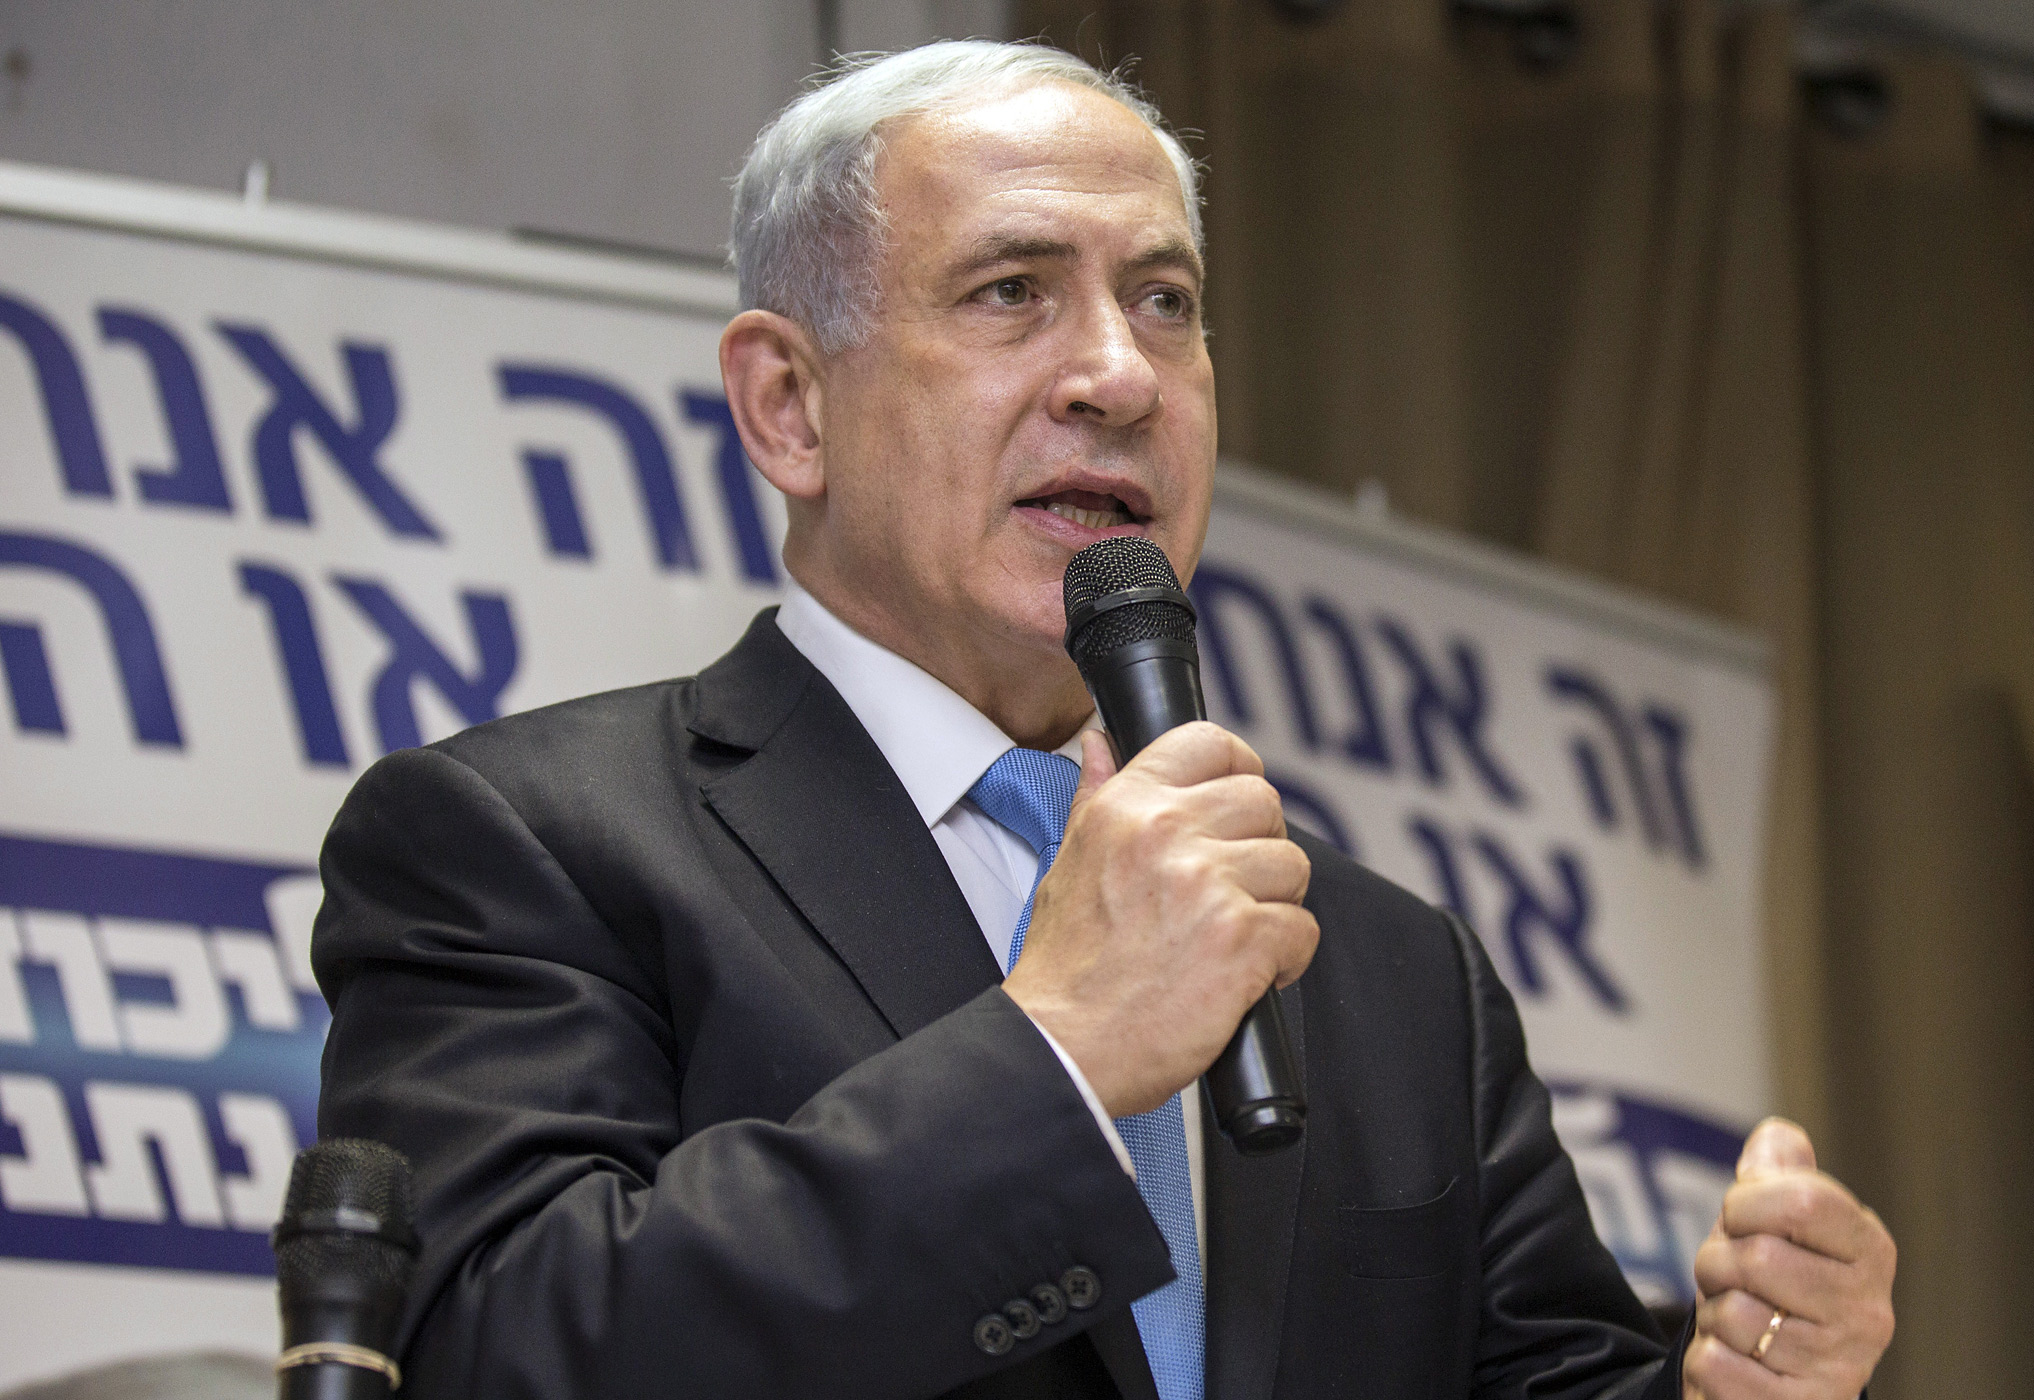 Israeli Prime Minister Benjamin Netanyahu delivers a speech during a campaign meeting with members of Israel's French-Jewish community on March 10, 2015, in Netanya, Israel